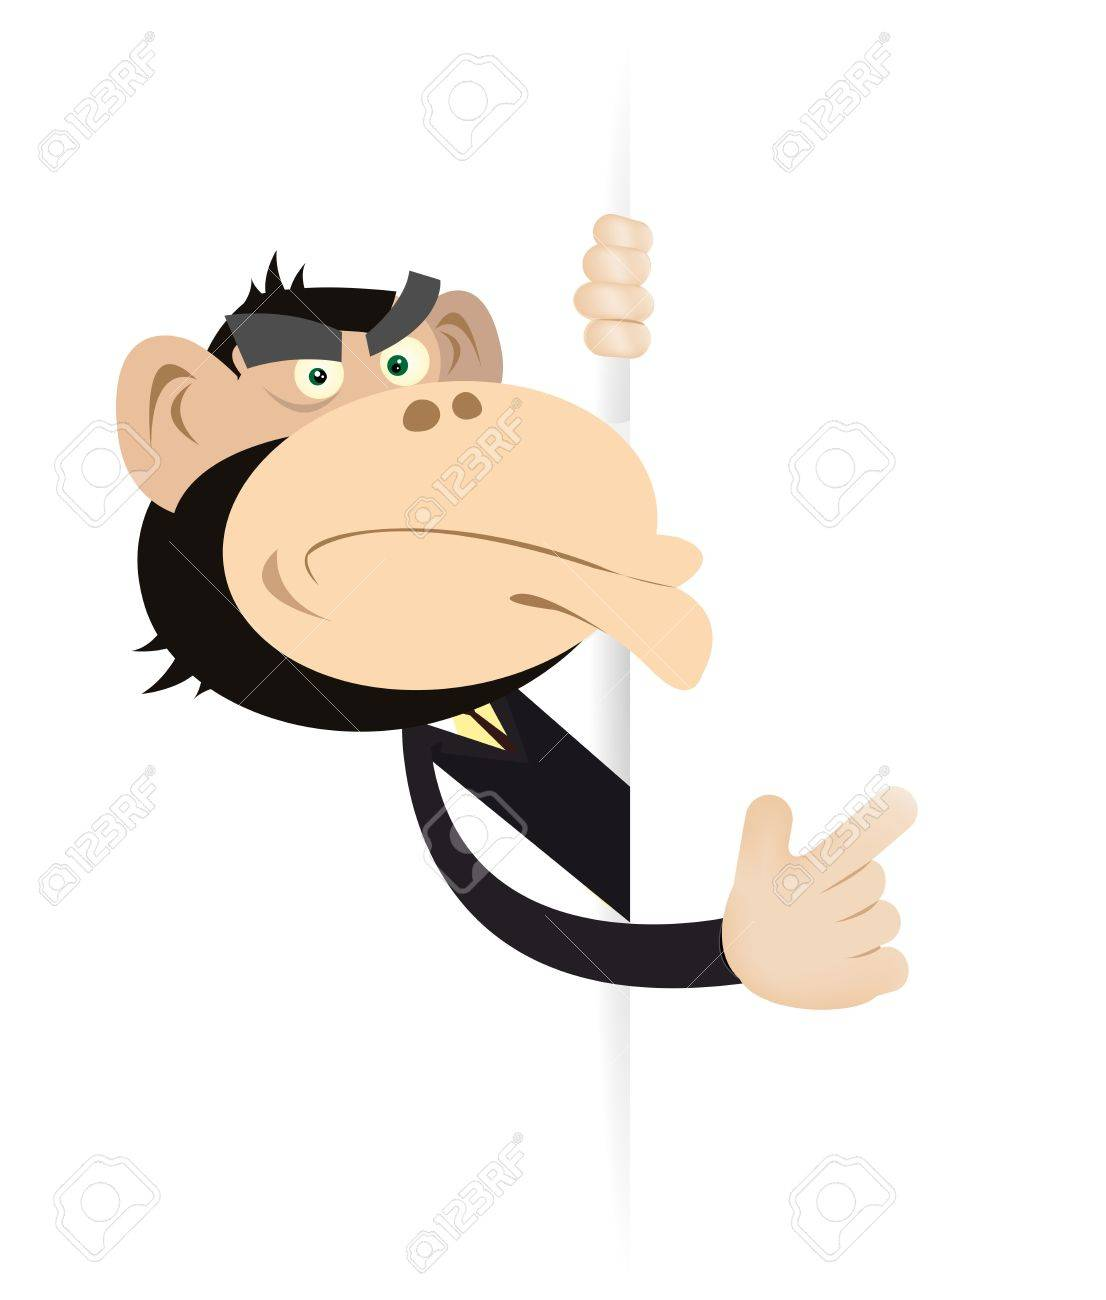 Illustration of a cartoon monkey businessman showing a blank sign Stock Vector - 11248844